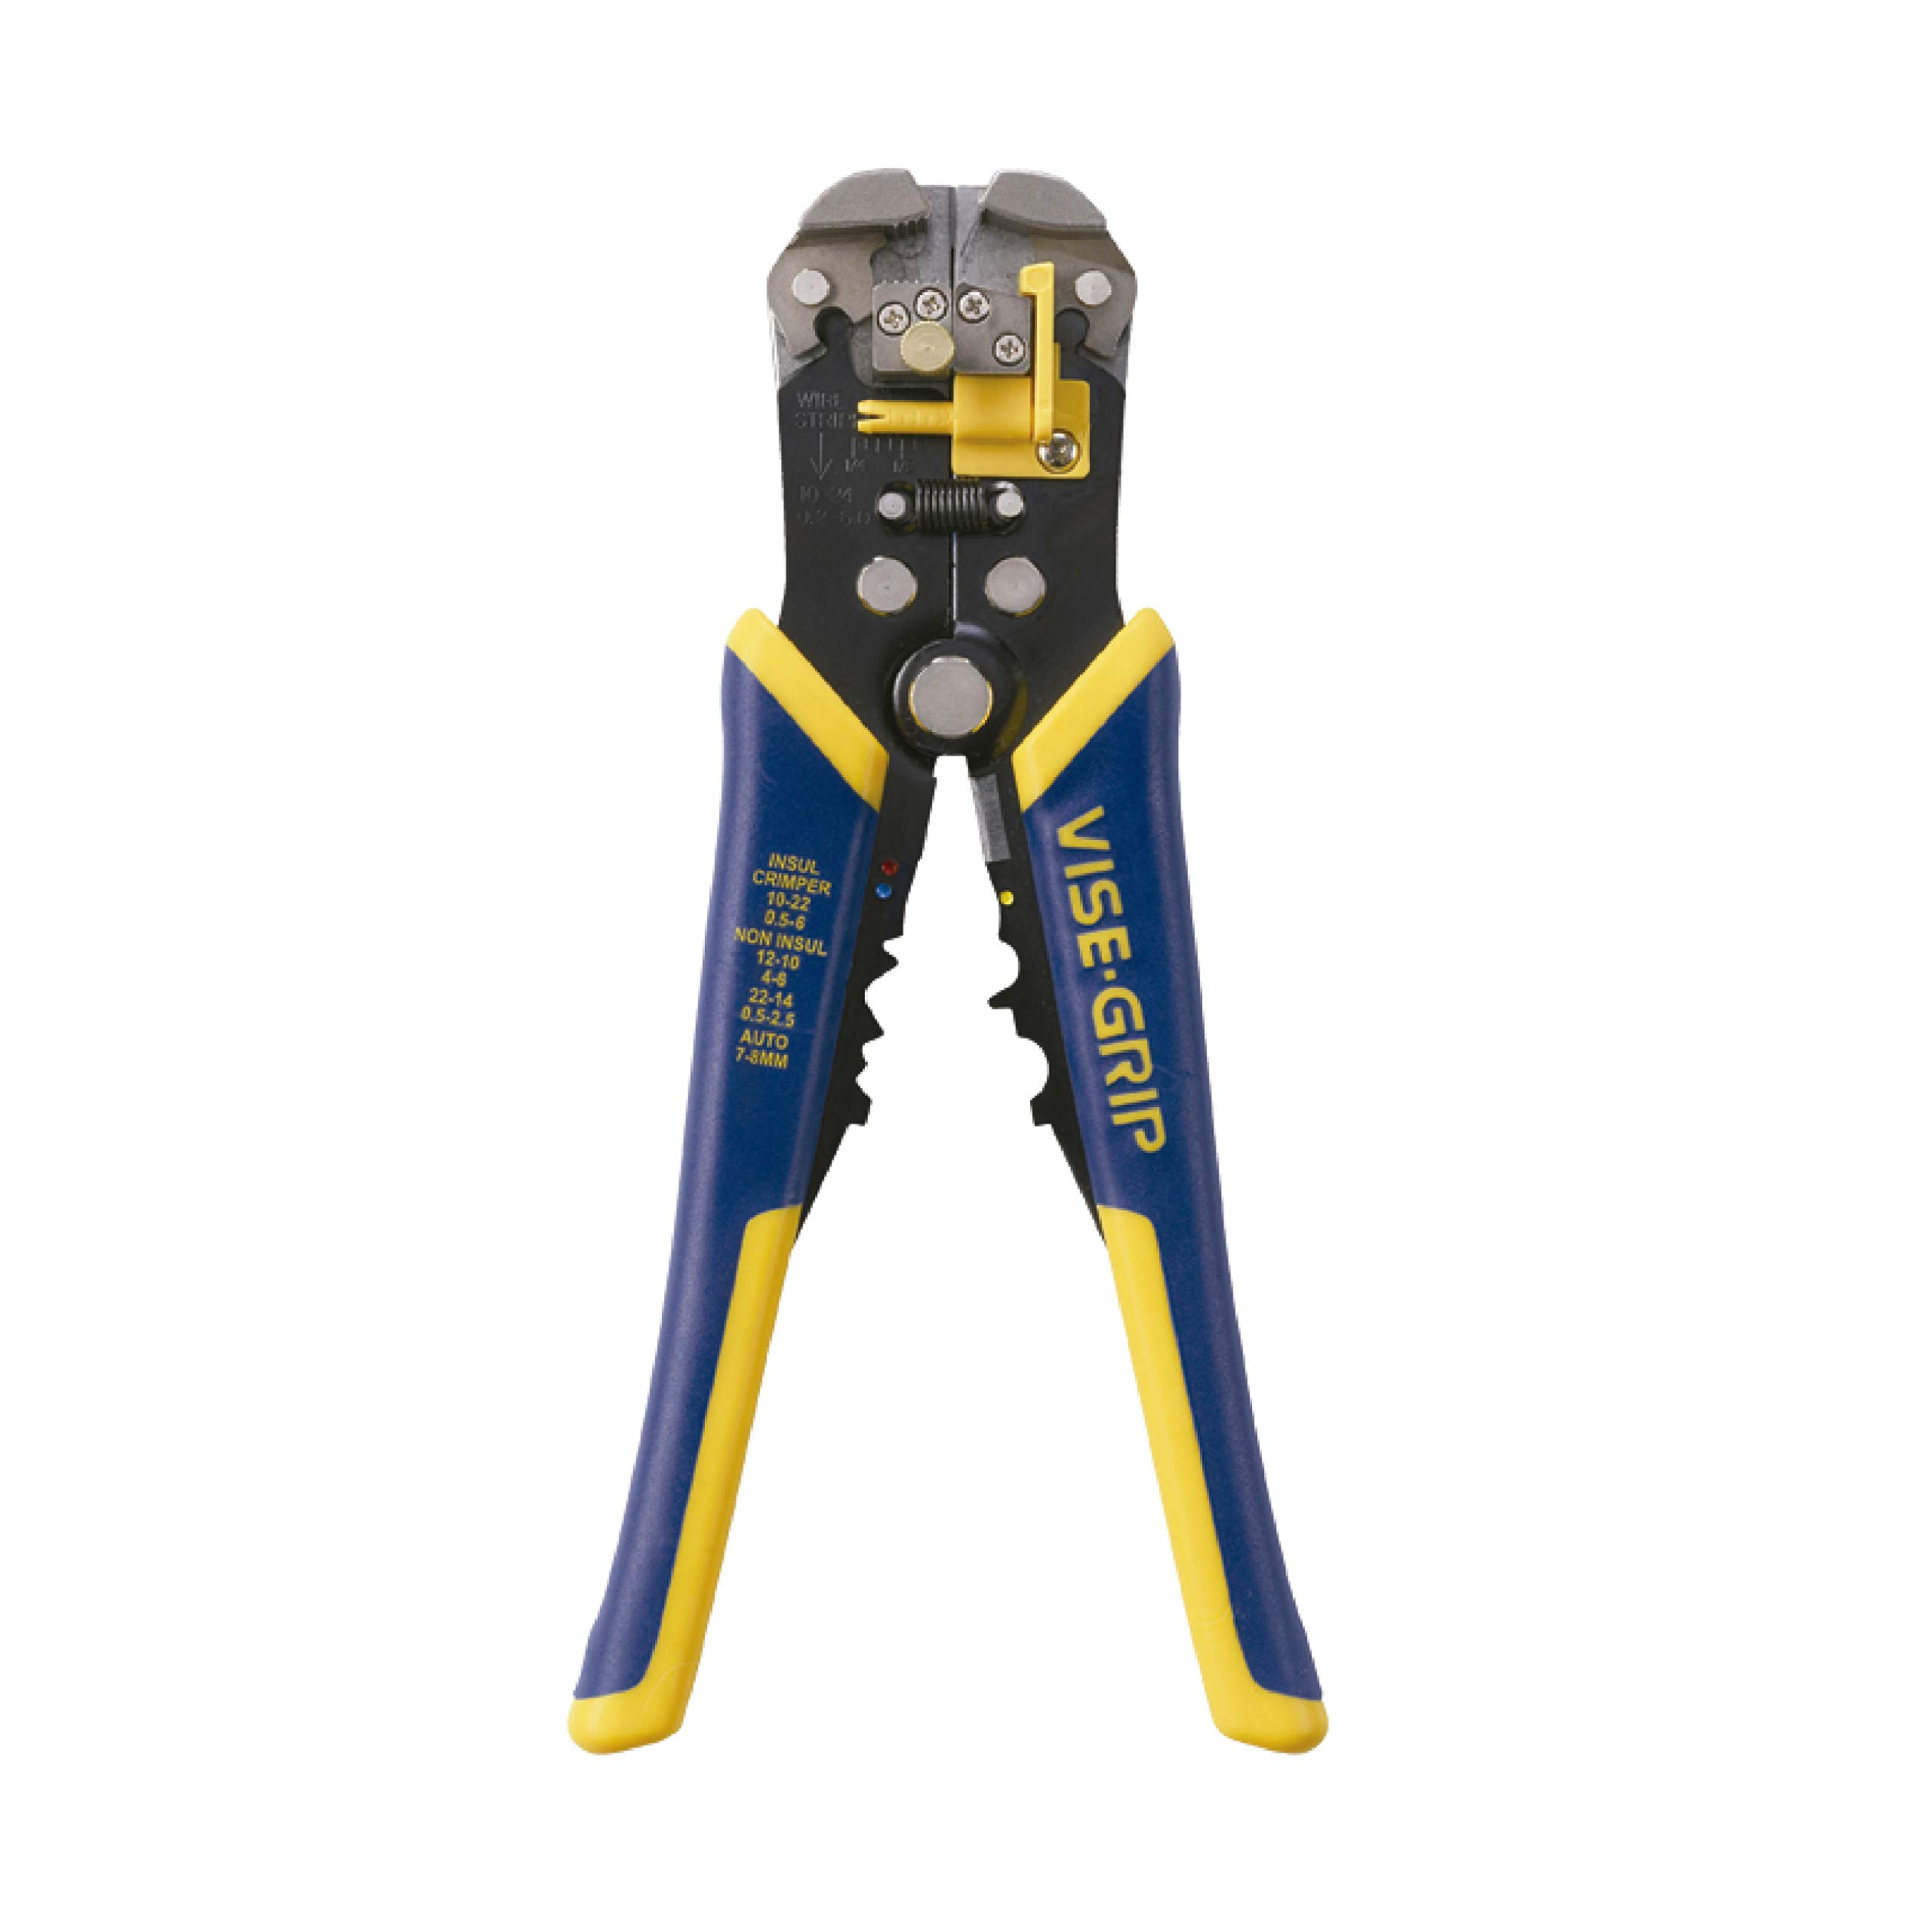 IRWIN VISE-GRIP 2078300 Self-Adjusting Wire Stripper, 8''